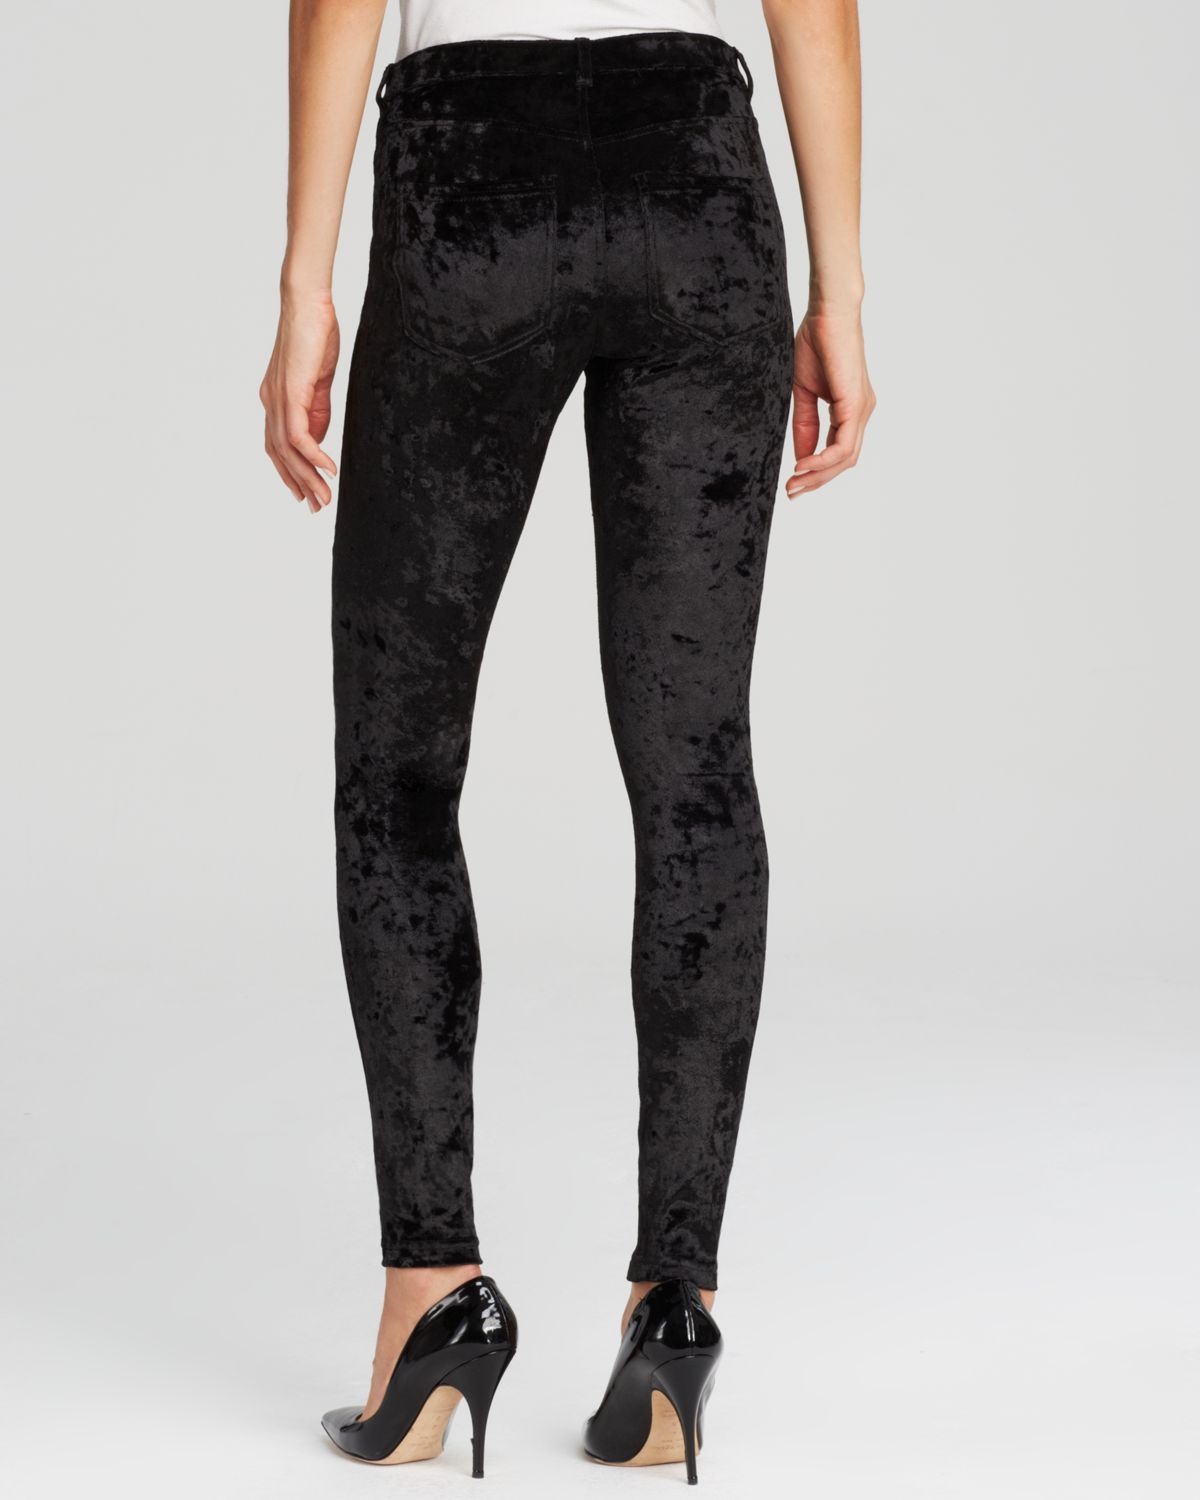 cbdb46caa7490 Hue Crushed Velvet Leggings in Black - Lyst